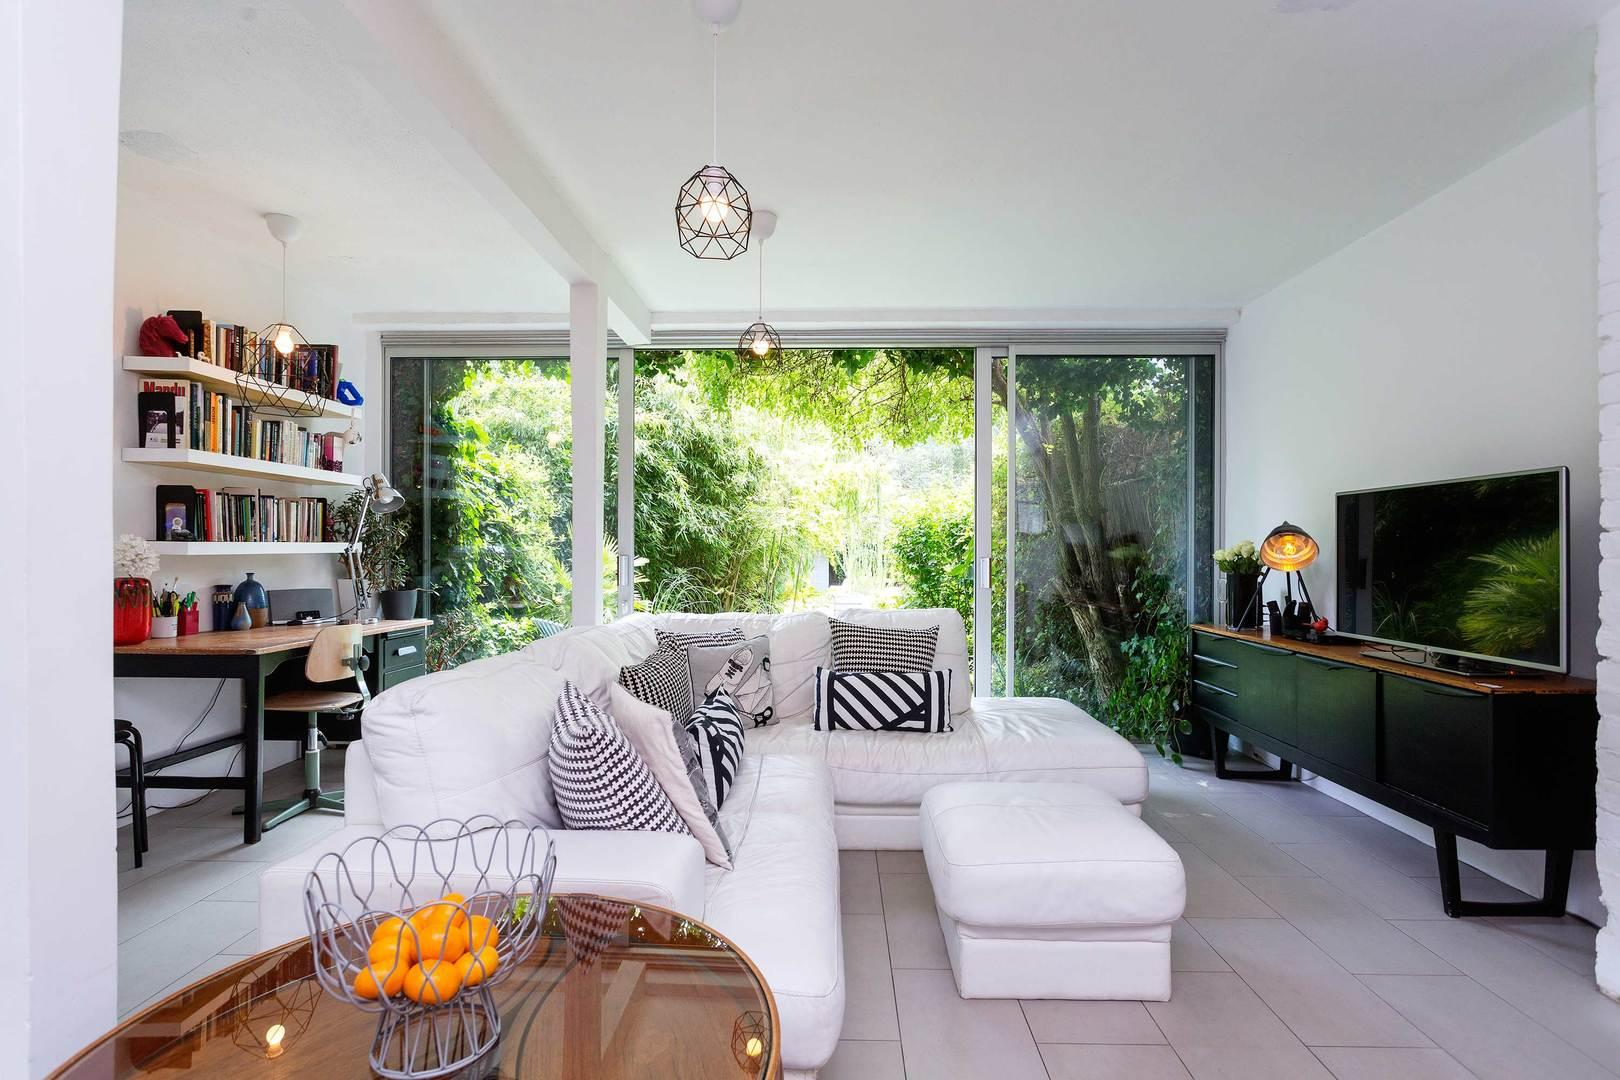 Property Image 1 - Fashionable Arty Dalston Home with Attractive Garden